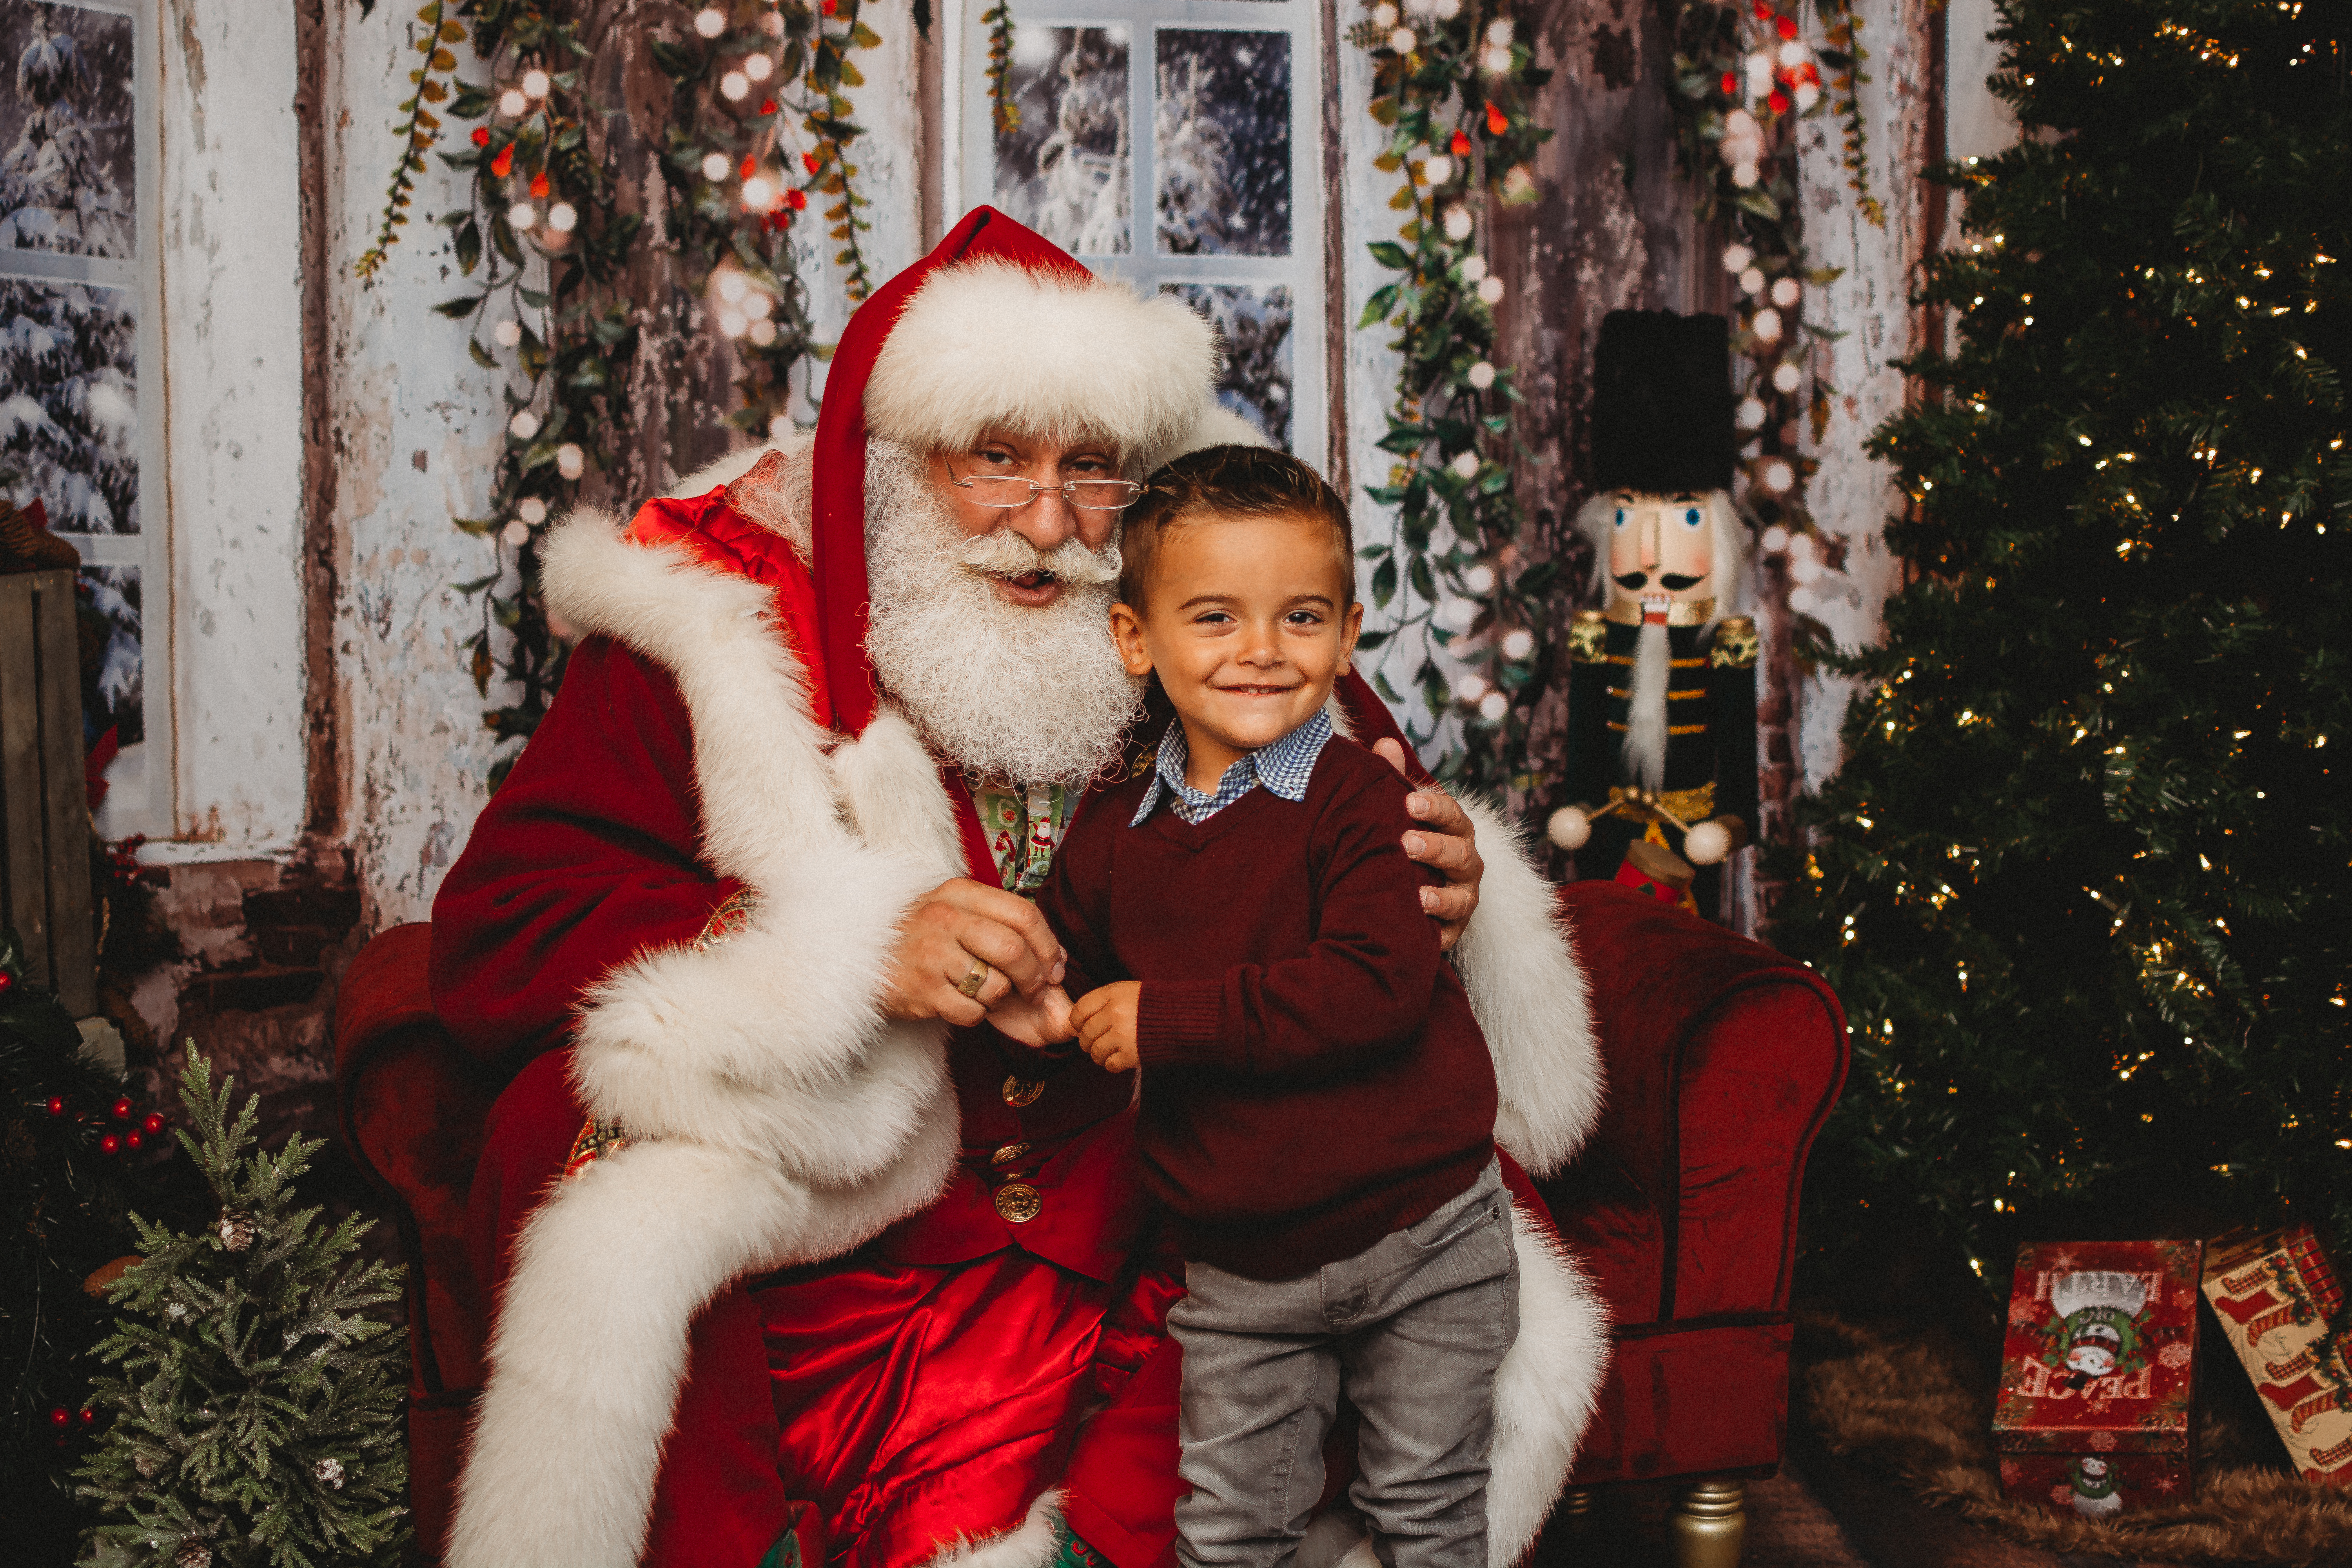 Christmas Events 2021 Nys The Real Santa Claus Lives In New York You Can Check His Id The Washington Post